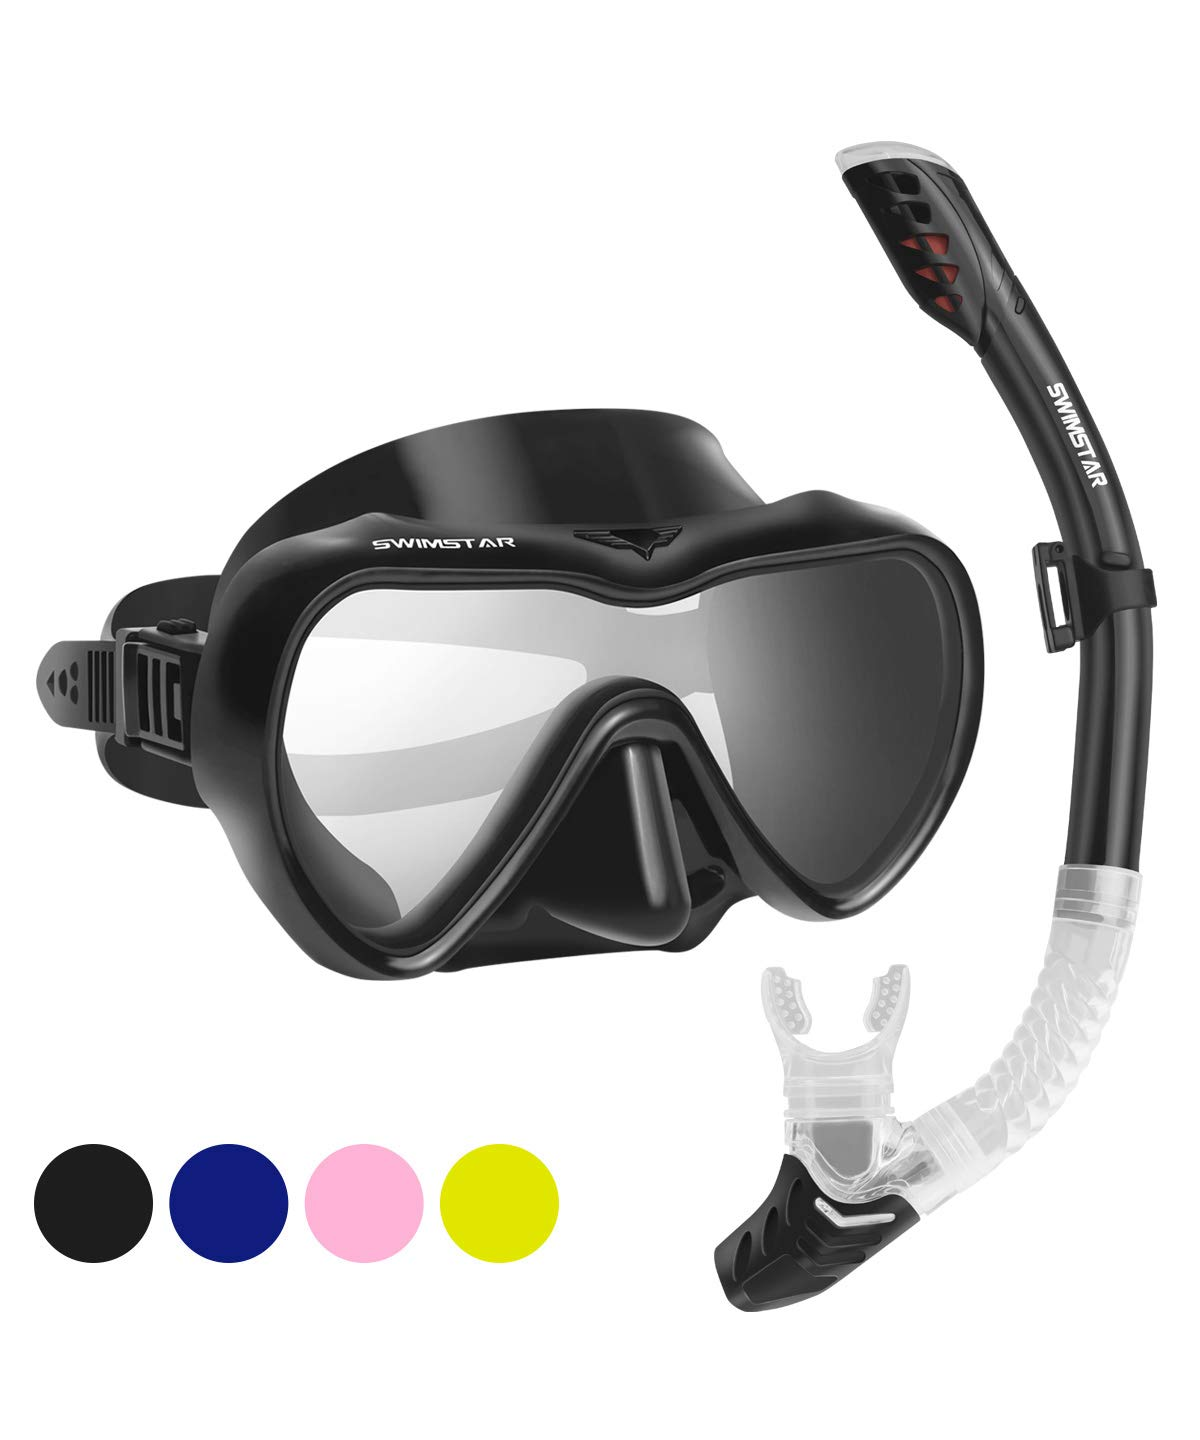 2019 Snorkel Set for Women and Men, Anti Fog Tempered Glass Snorkel Mask for Snorkeling, Swimming and Scuba Diving, Anti Leak Dry Top Snorkel Gear Panoramic Silicone Goggle No Leak Black by SwimStar